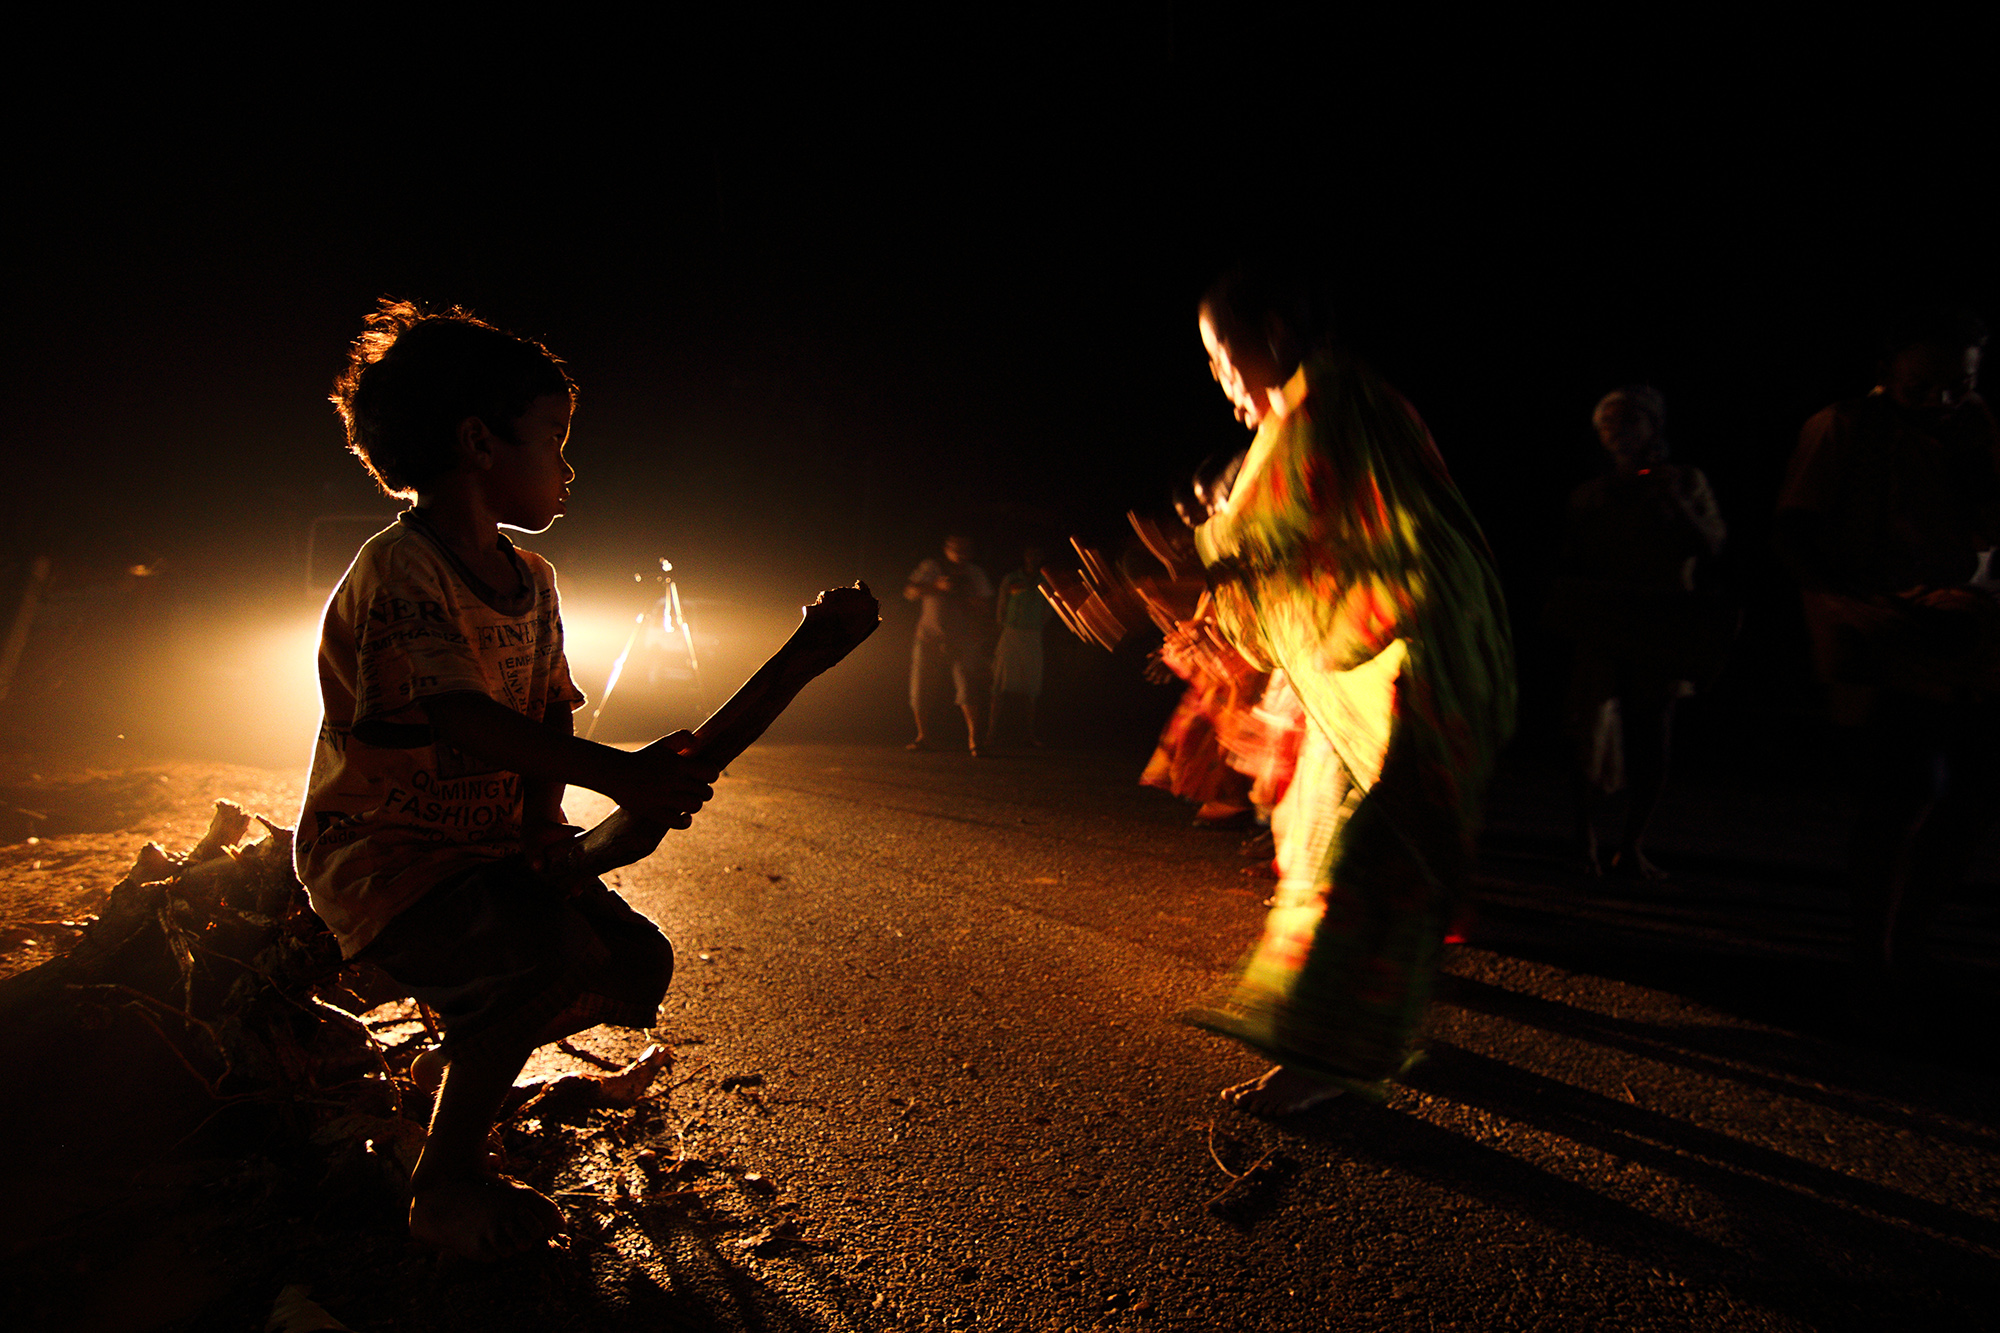 Few weeks ago I have been in Purulia for documenting the ancient culture.I have found some unique incidents there.That night I found this group of people were practicing for their performance.Santal dance form is one of the oldest tribal culture in India.Very few places still have this practice. I was lucky that I have experienced it but I found very calm reflexes from the performers as they dont get regular finance from this ancient dance form as its losing due to lack of grooming amongst them